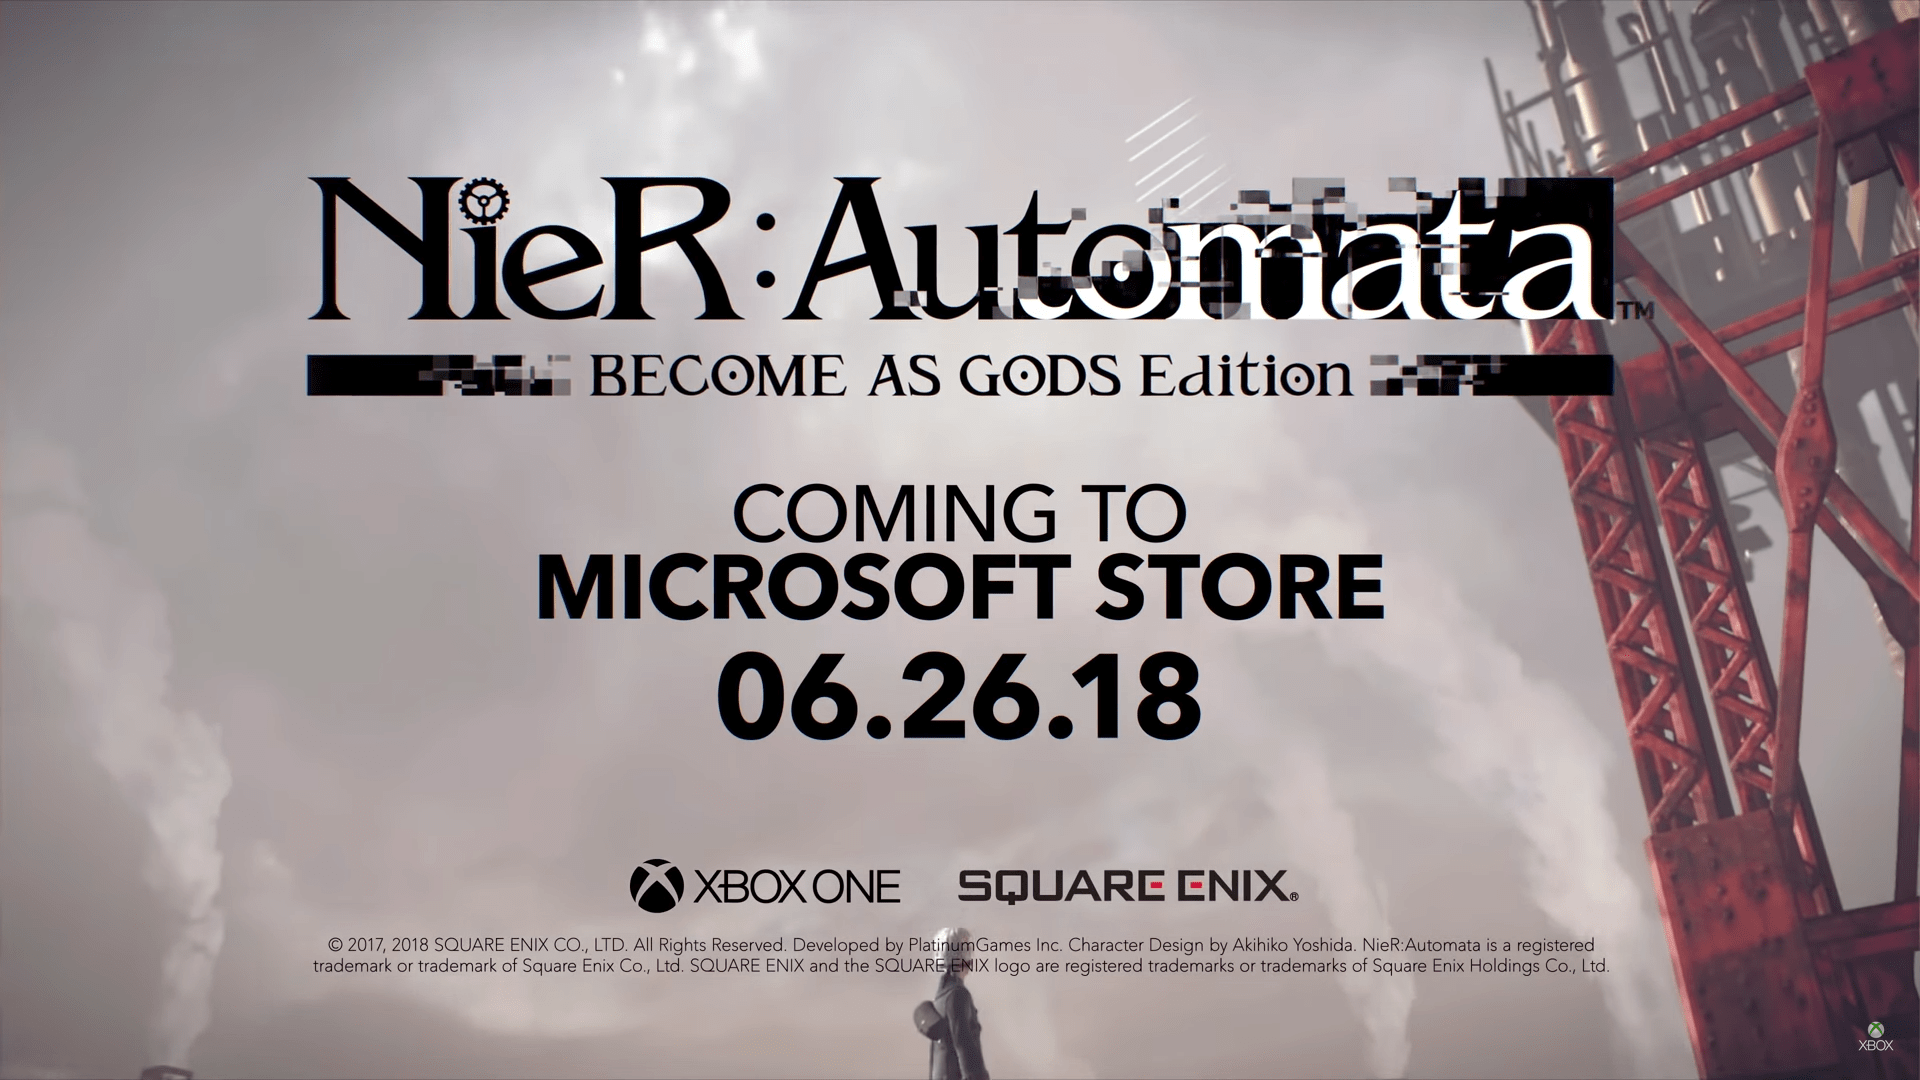 E3 2018 - Nier Automata: Become as Gods Edition